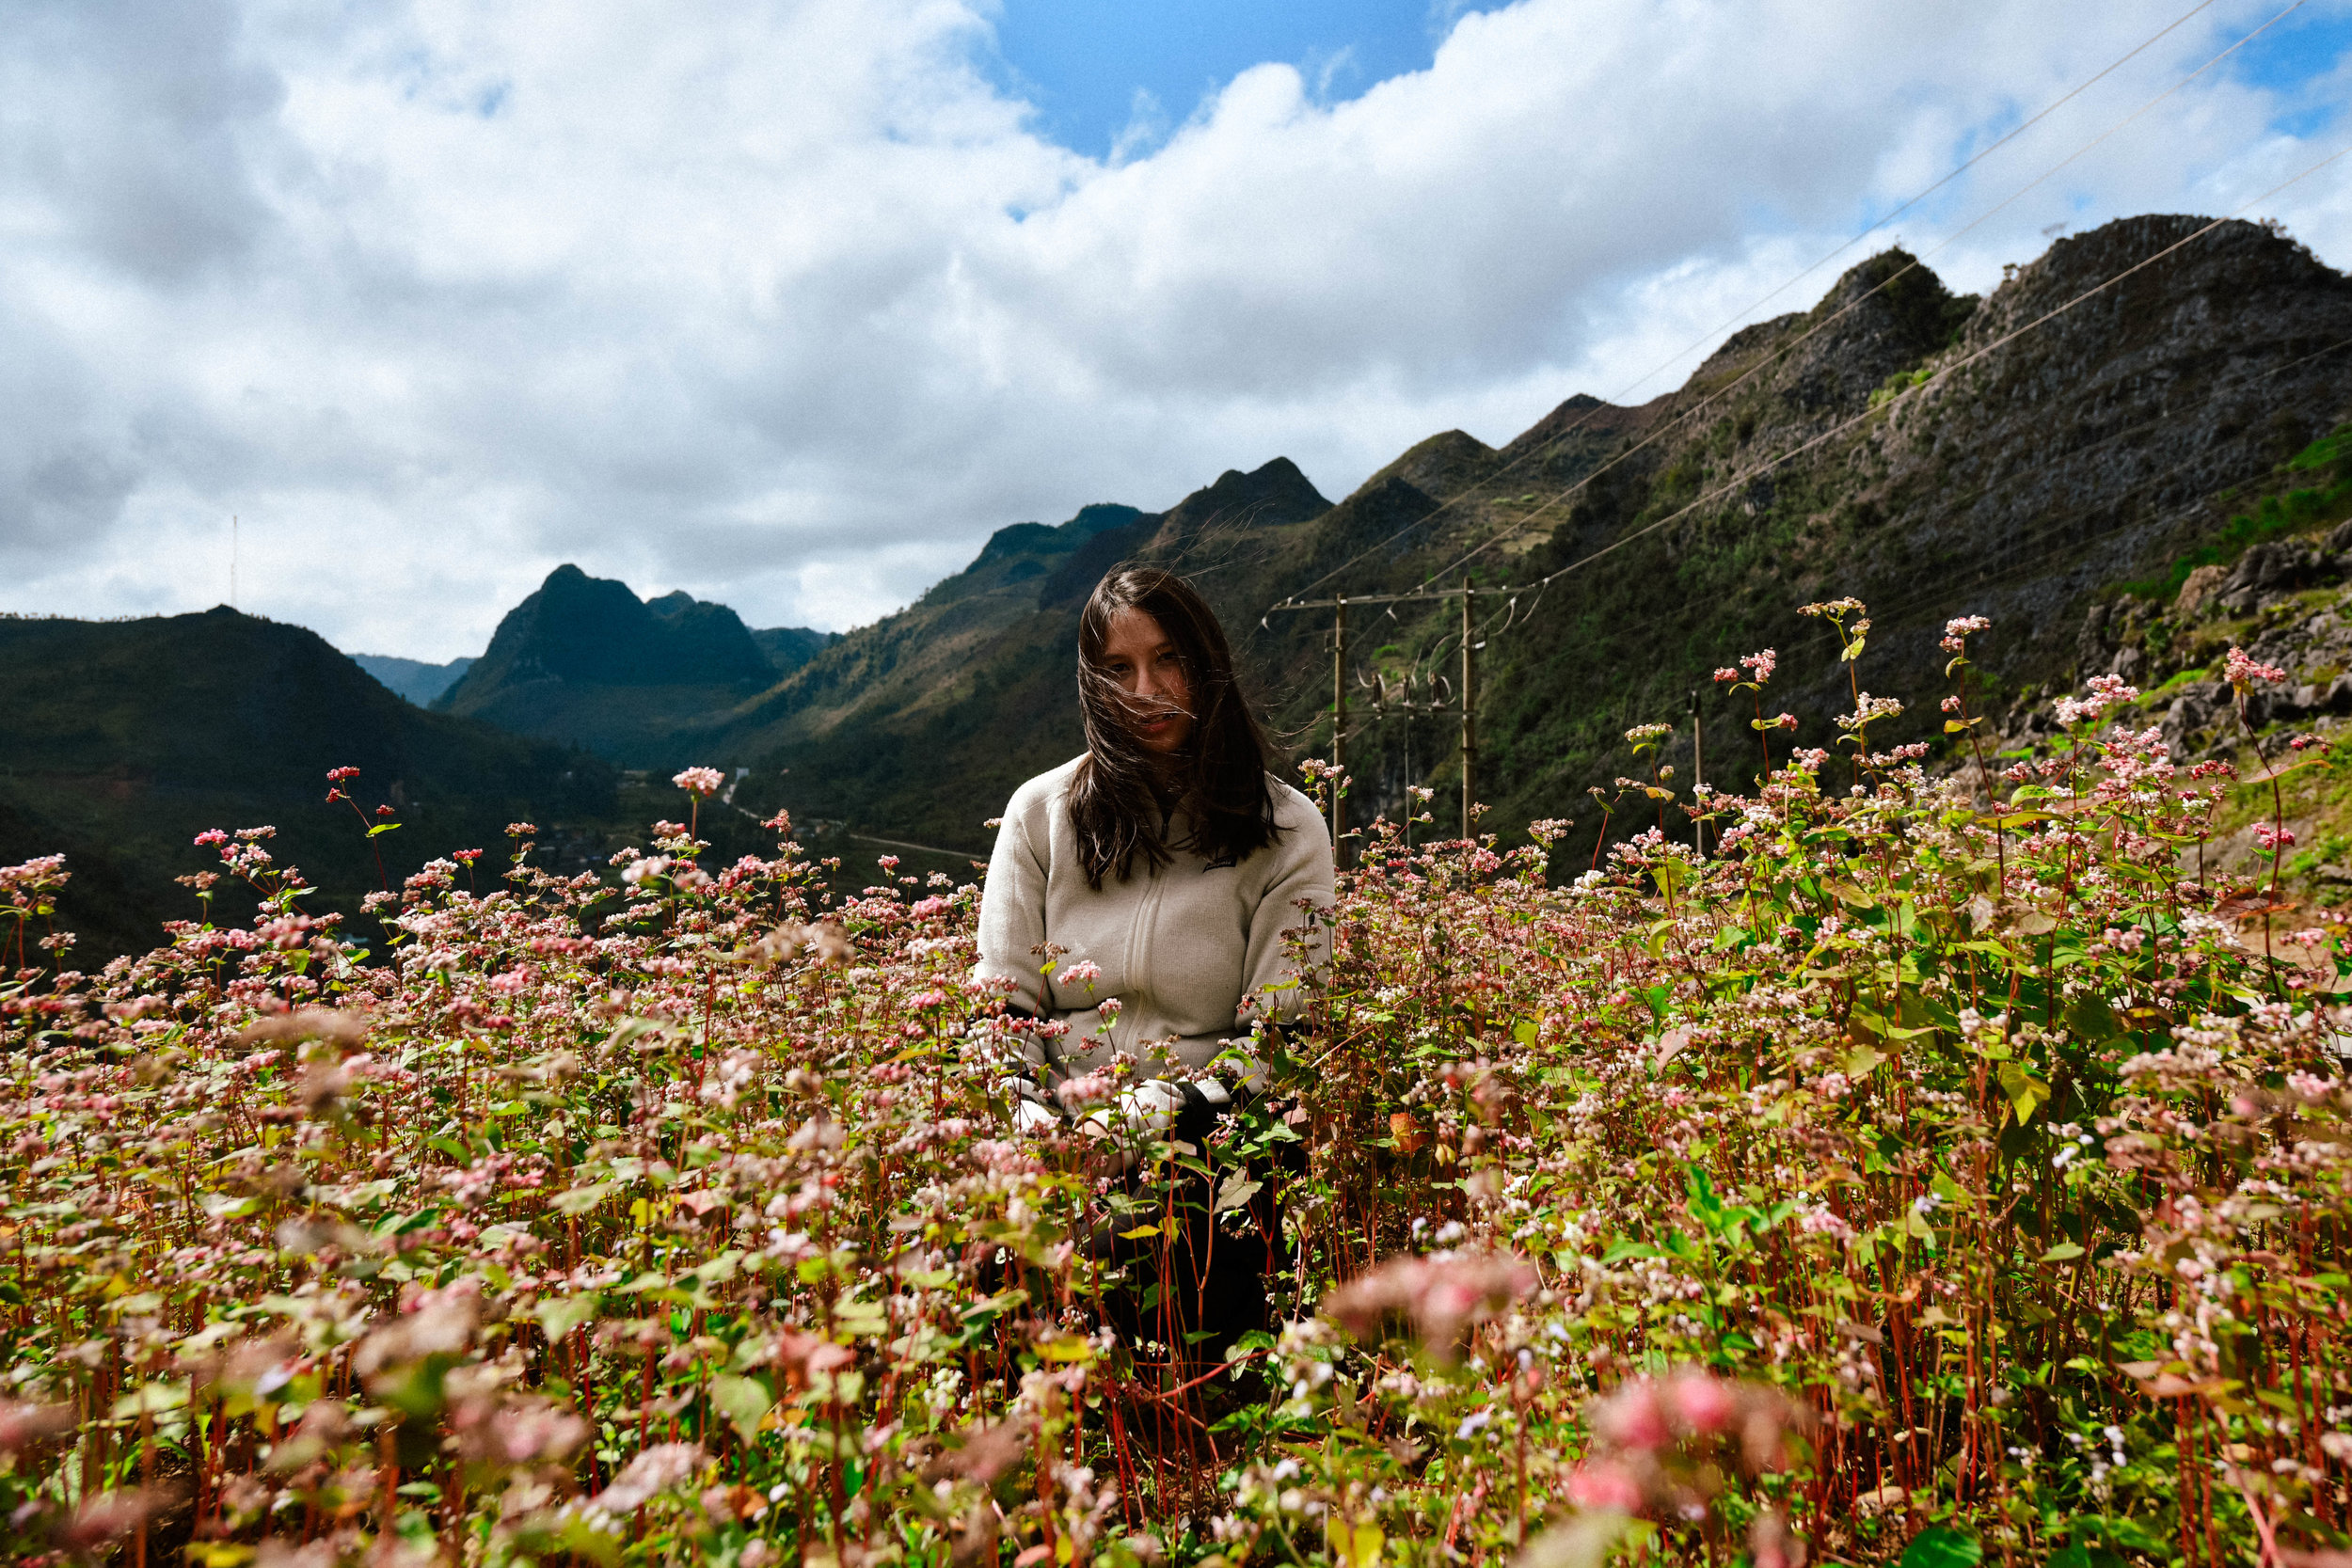 girl sitting in a field of pink flowers